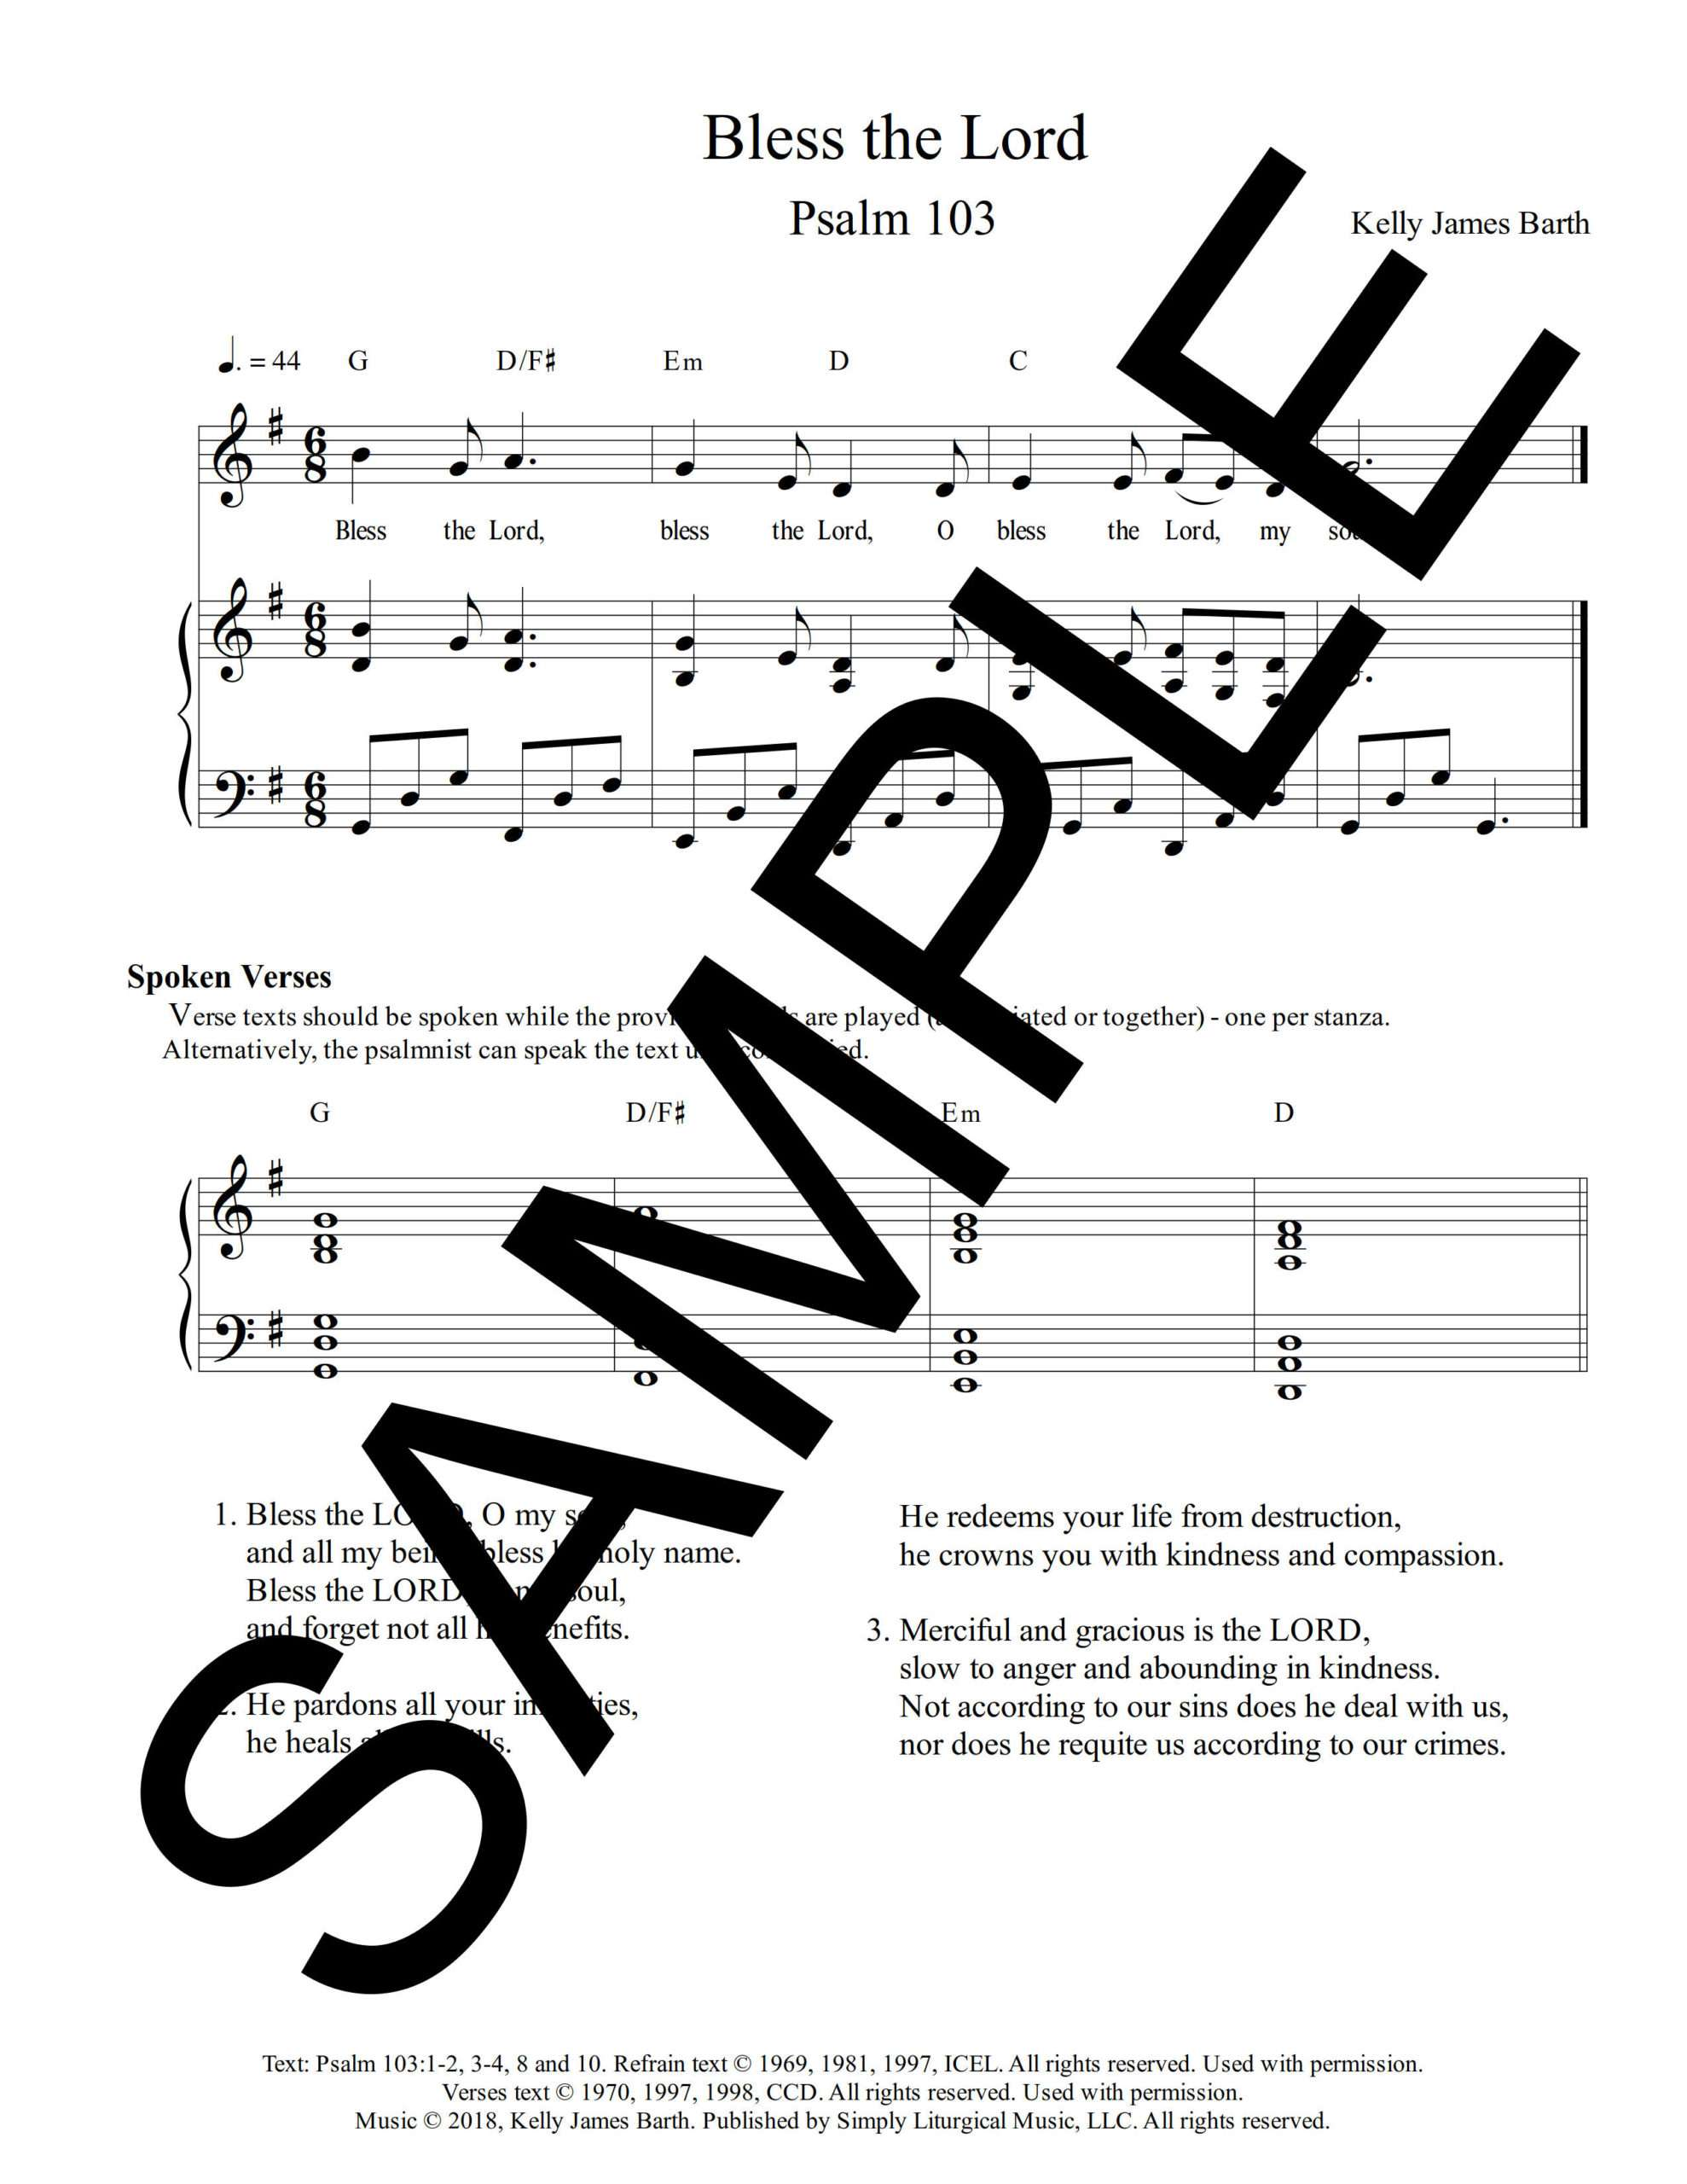 Psalm 103 Bless the Lord Barth Sample Sheet Music 1 png